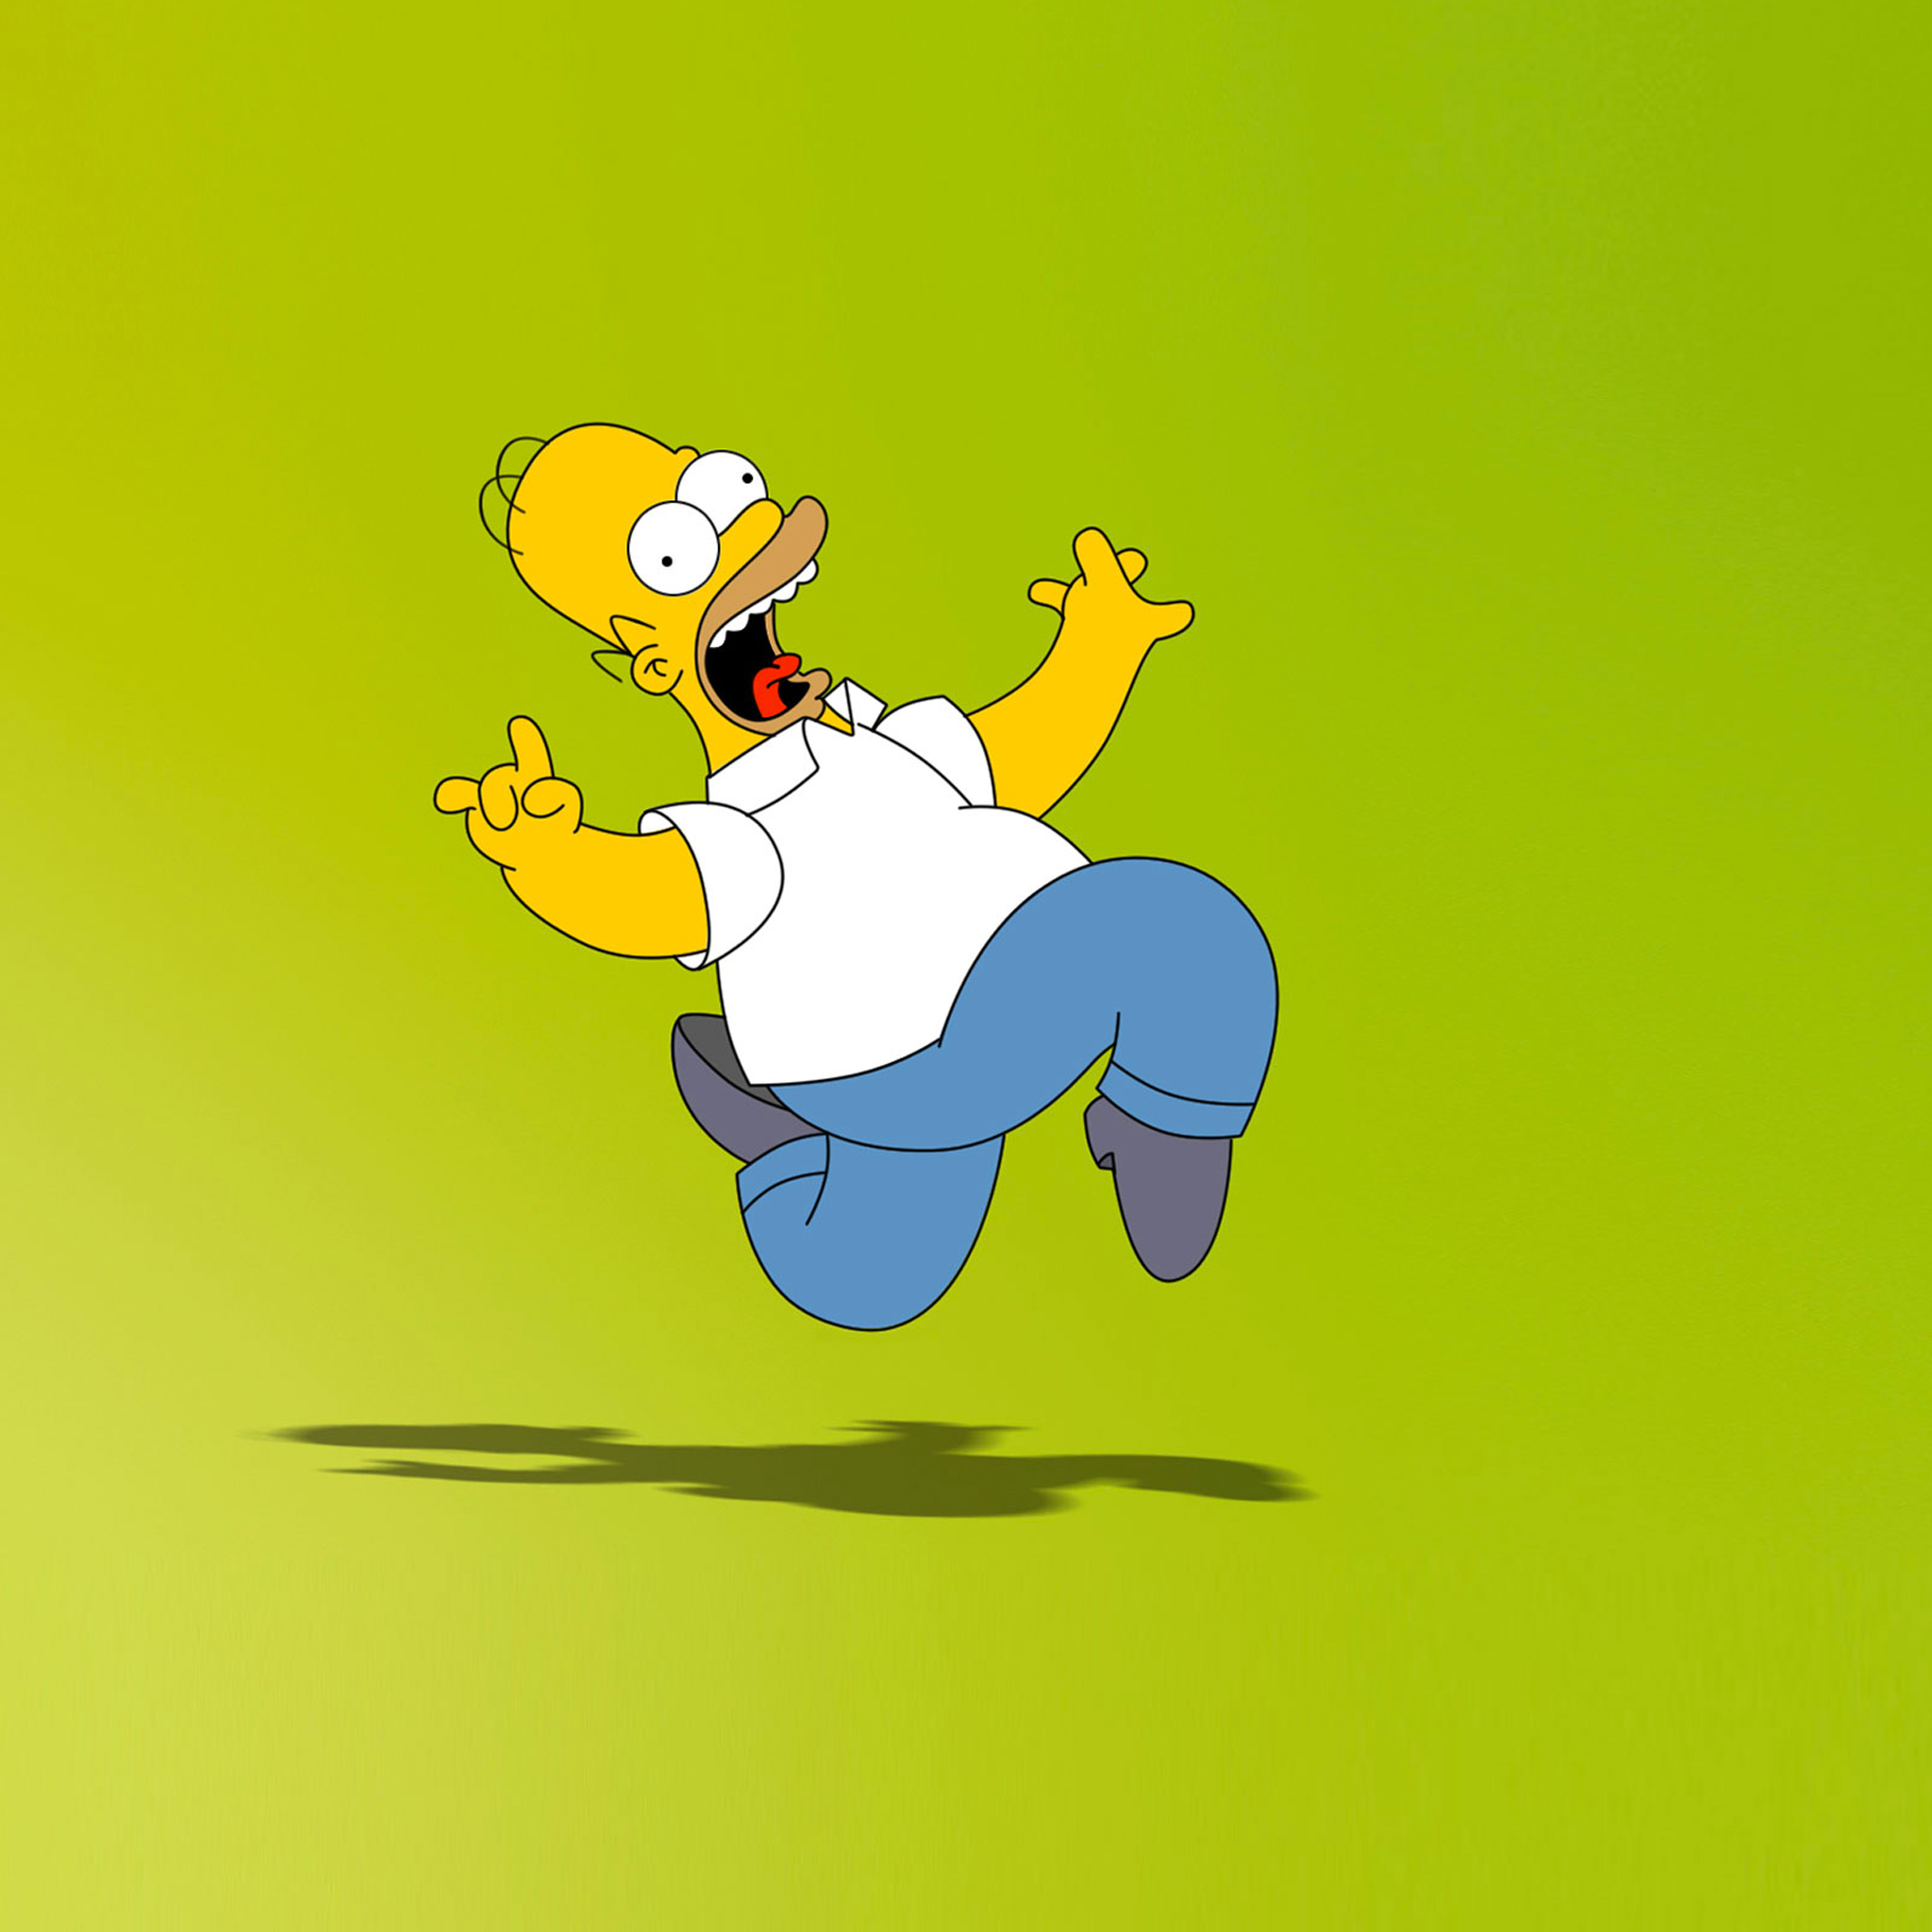 Simpson Homer 3Wallpapers iPad Retina Simpson Homer   iPad Retina